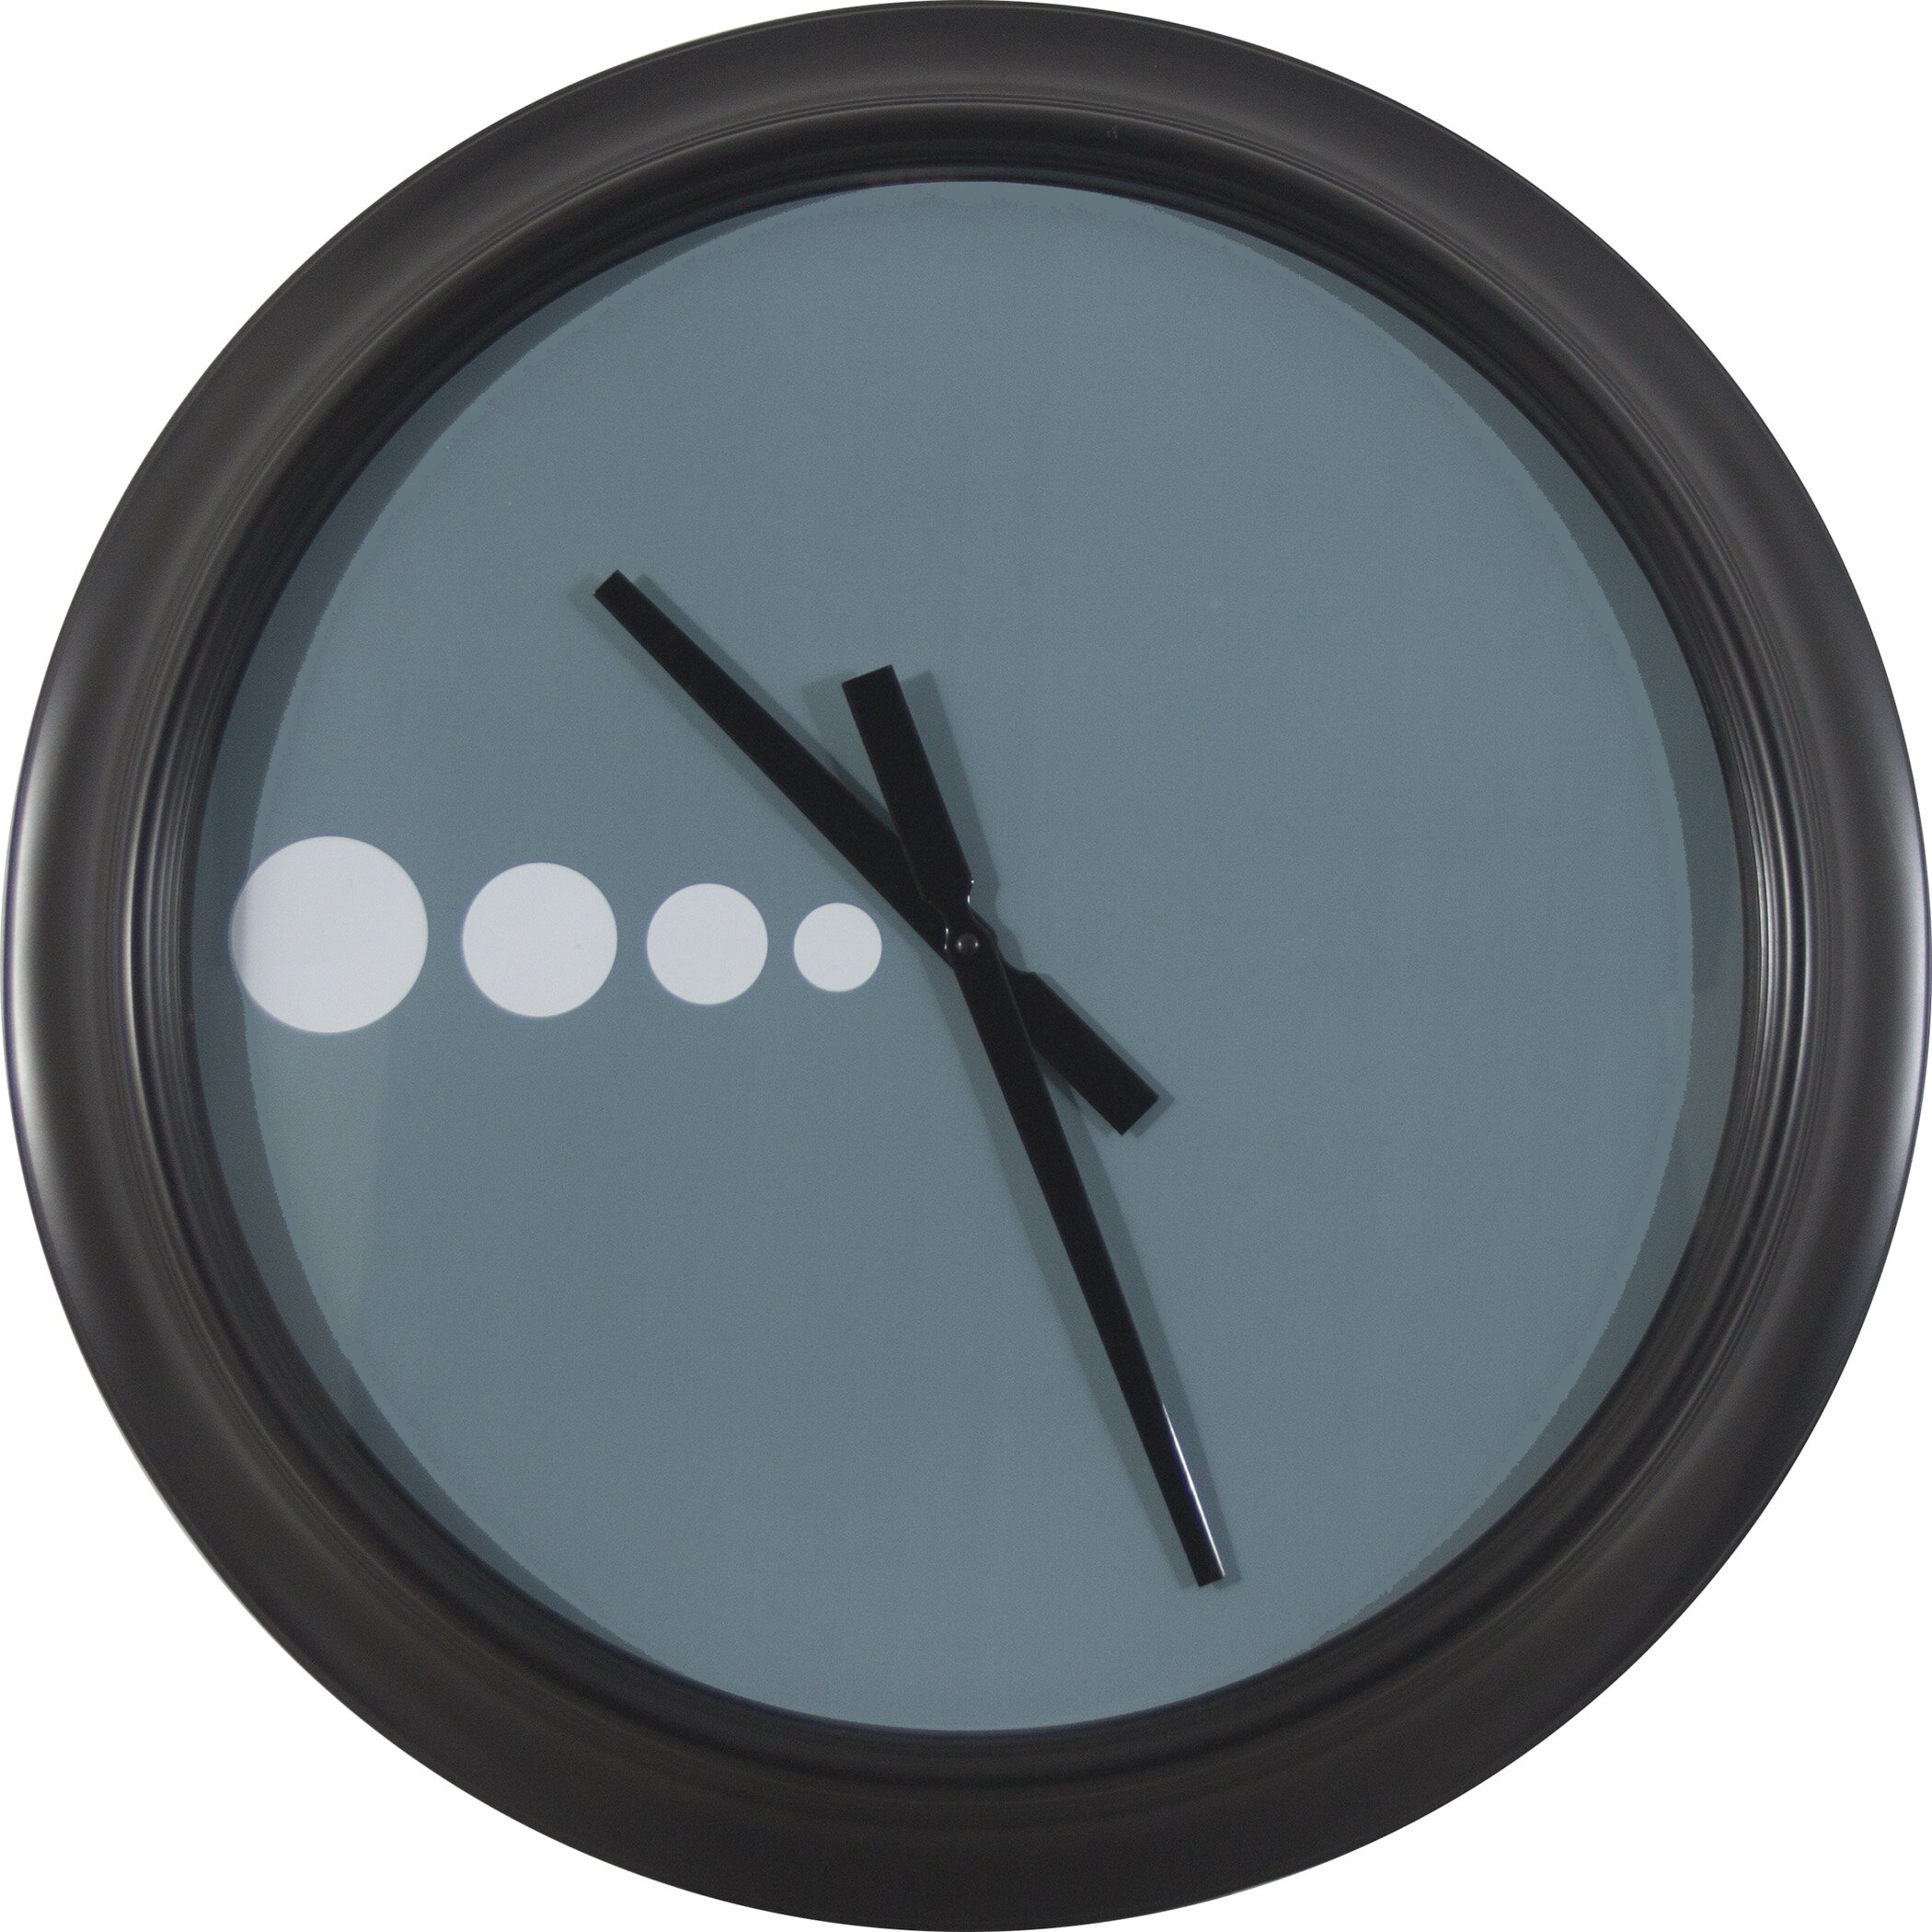 Decor therapy oversized 24 contemporary wall clock - Oversized modern wall clock ...